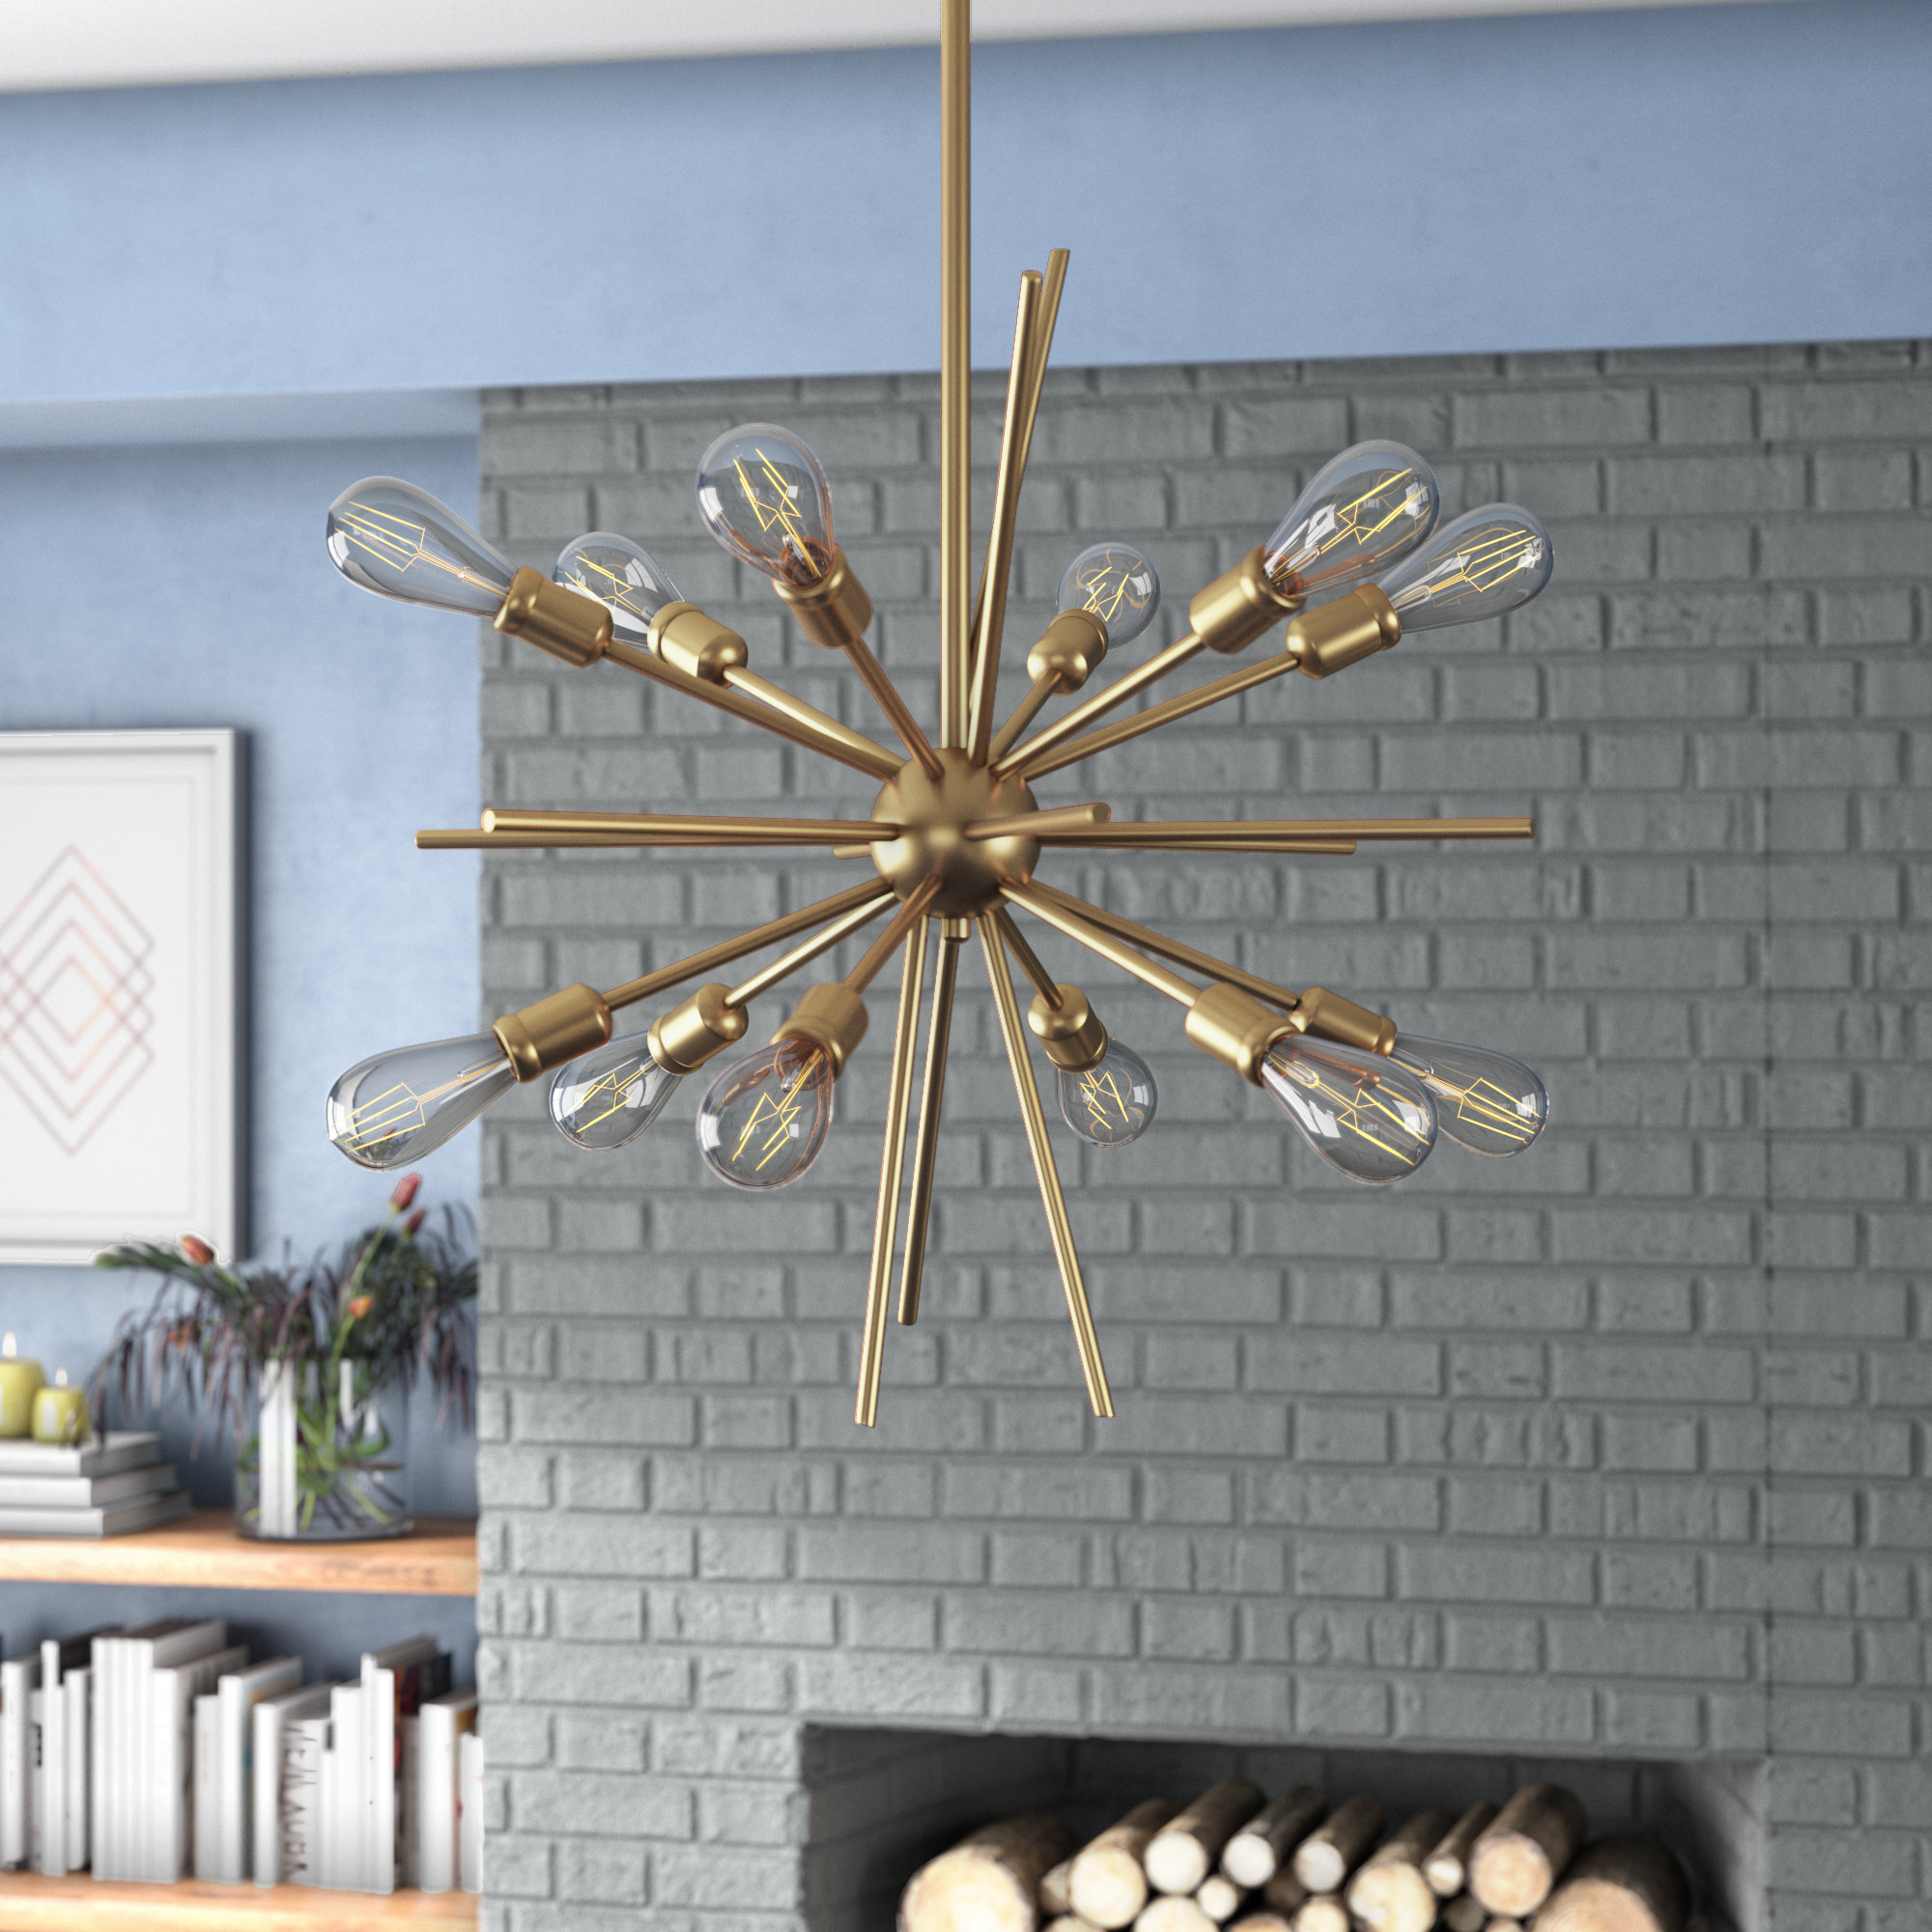 Langley Street Corona 12 Light Sputnik Chandelier & Reviews Pertaining To Well Liked Nelly 12 Light Sputnik Chandeliers (View 9 of 25)